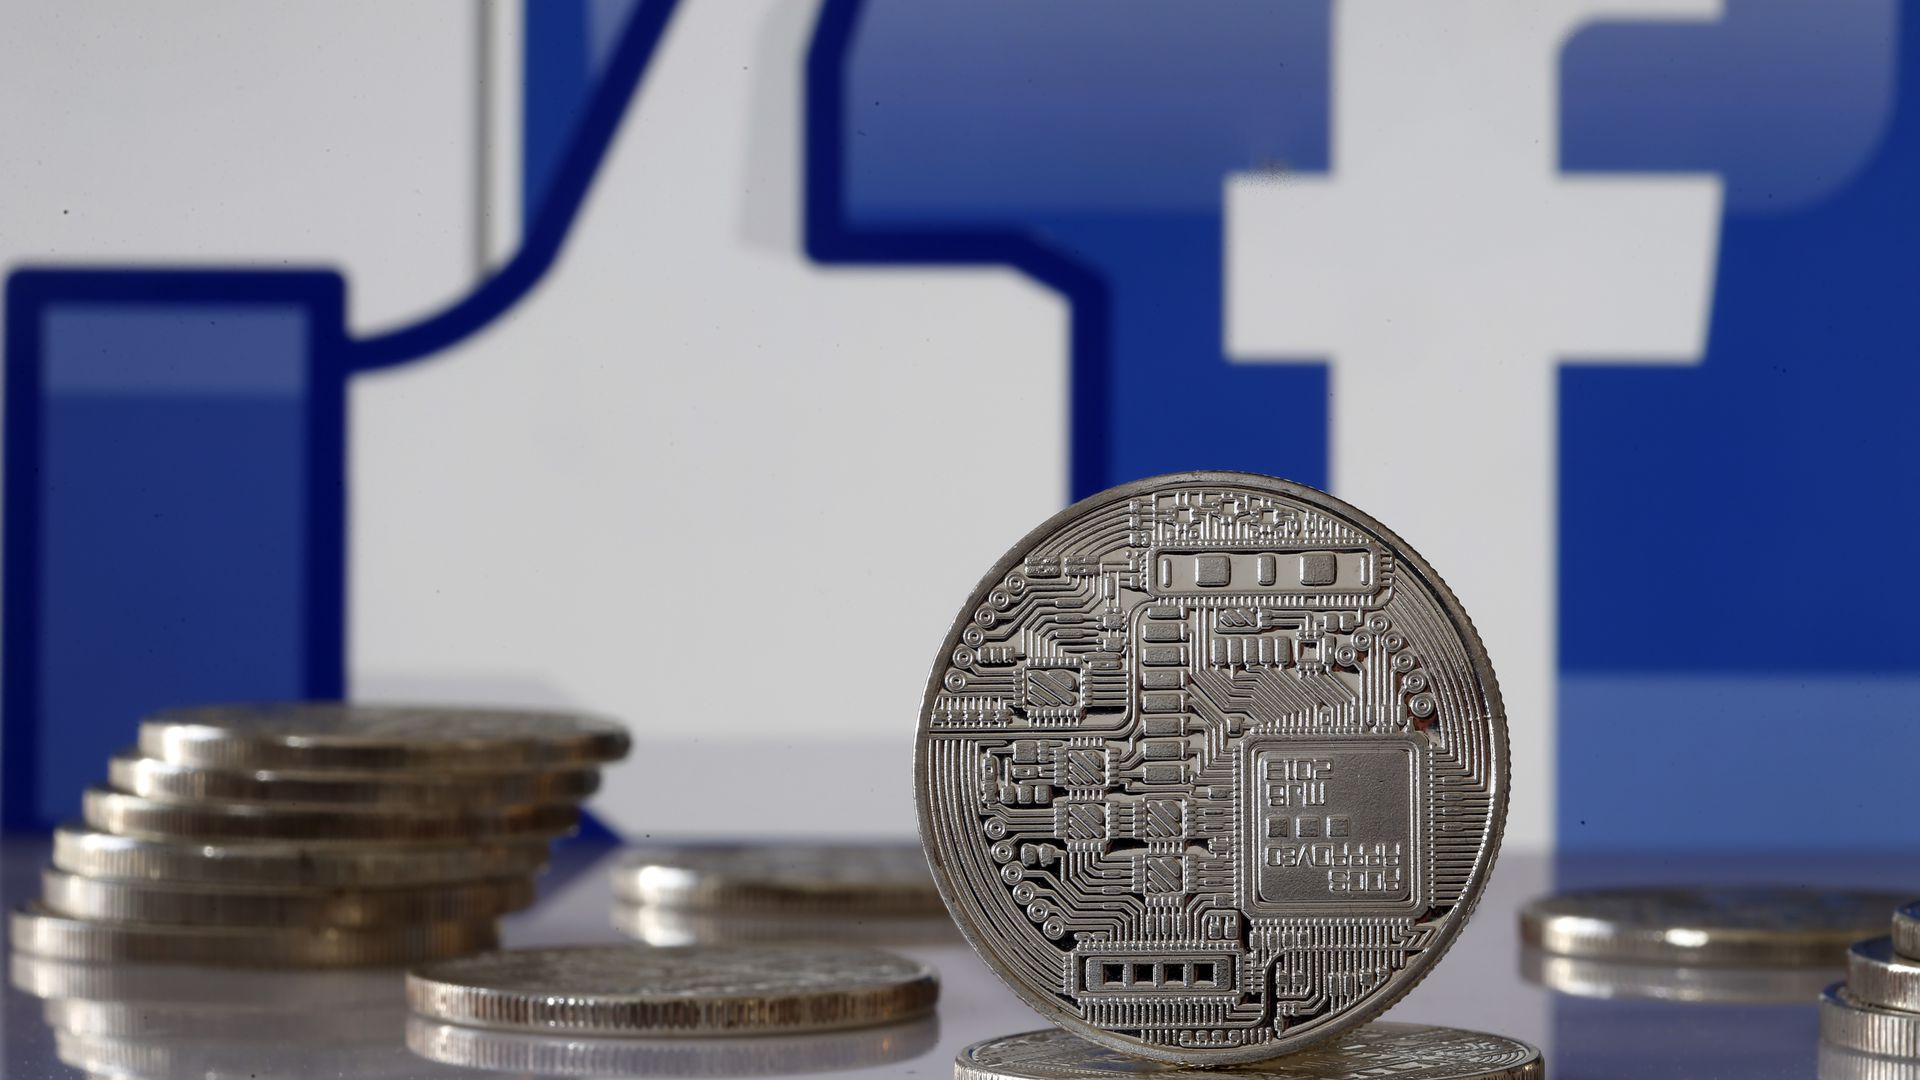 Facebook's new cryptocurrency Libra